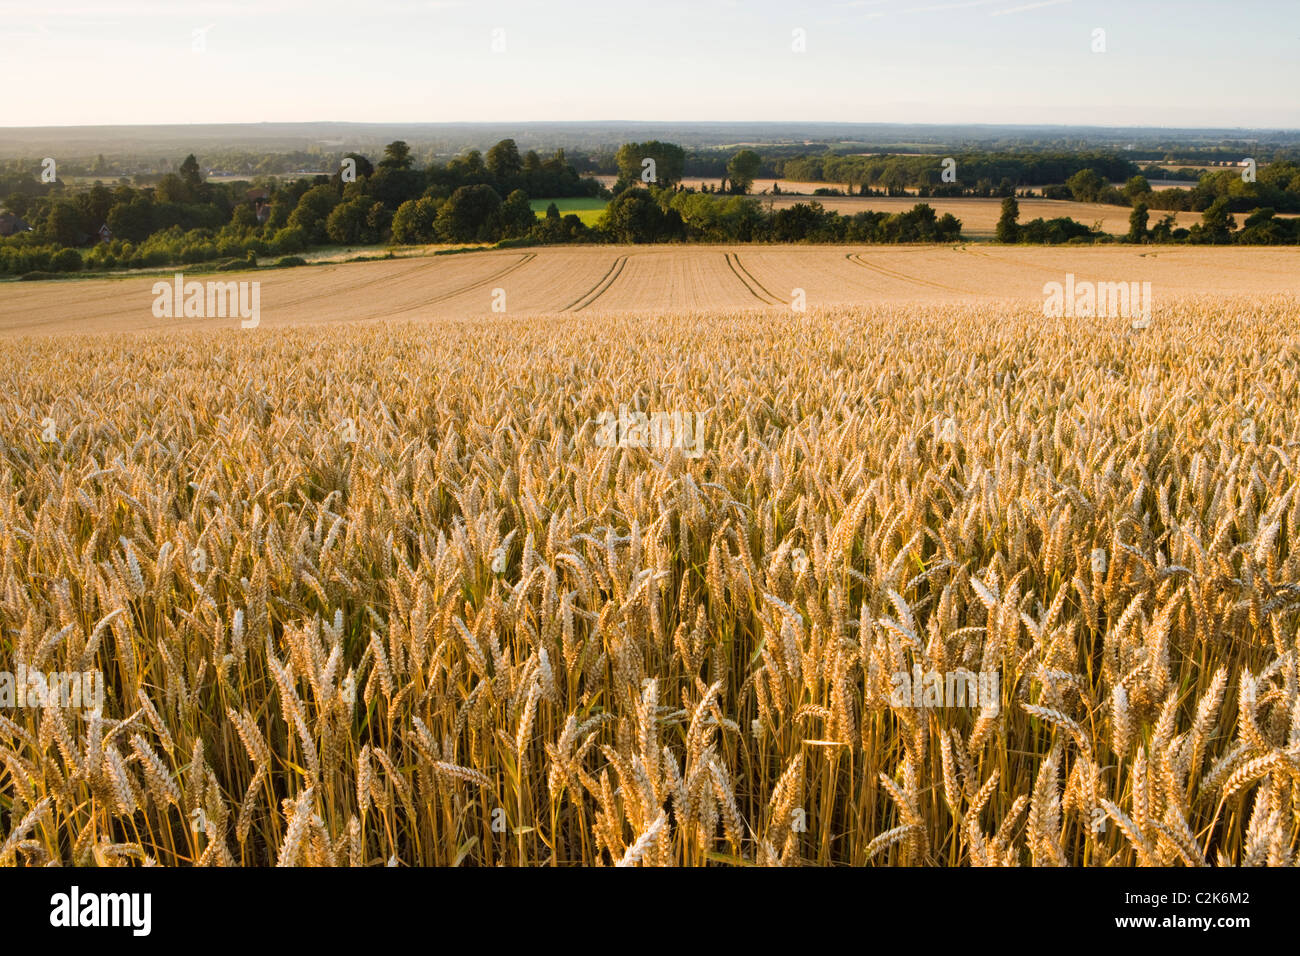 Field of ripe wheat, Surrey, UK Stock Photo